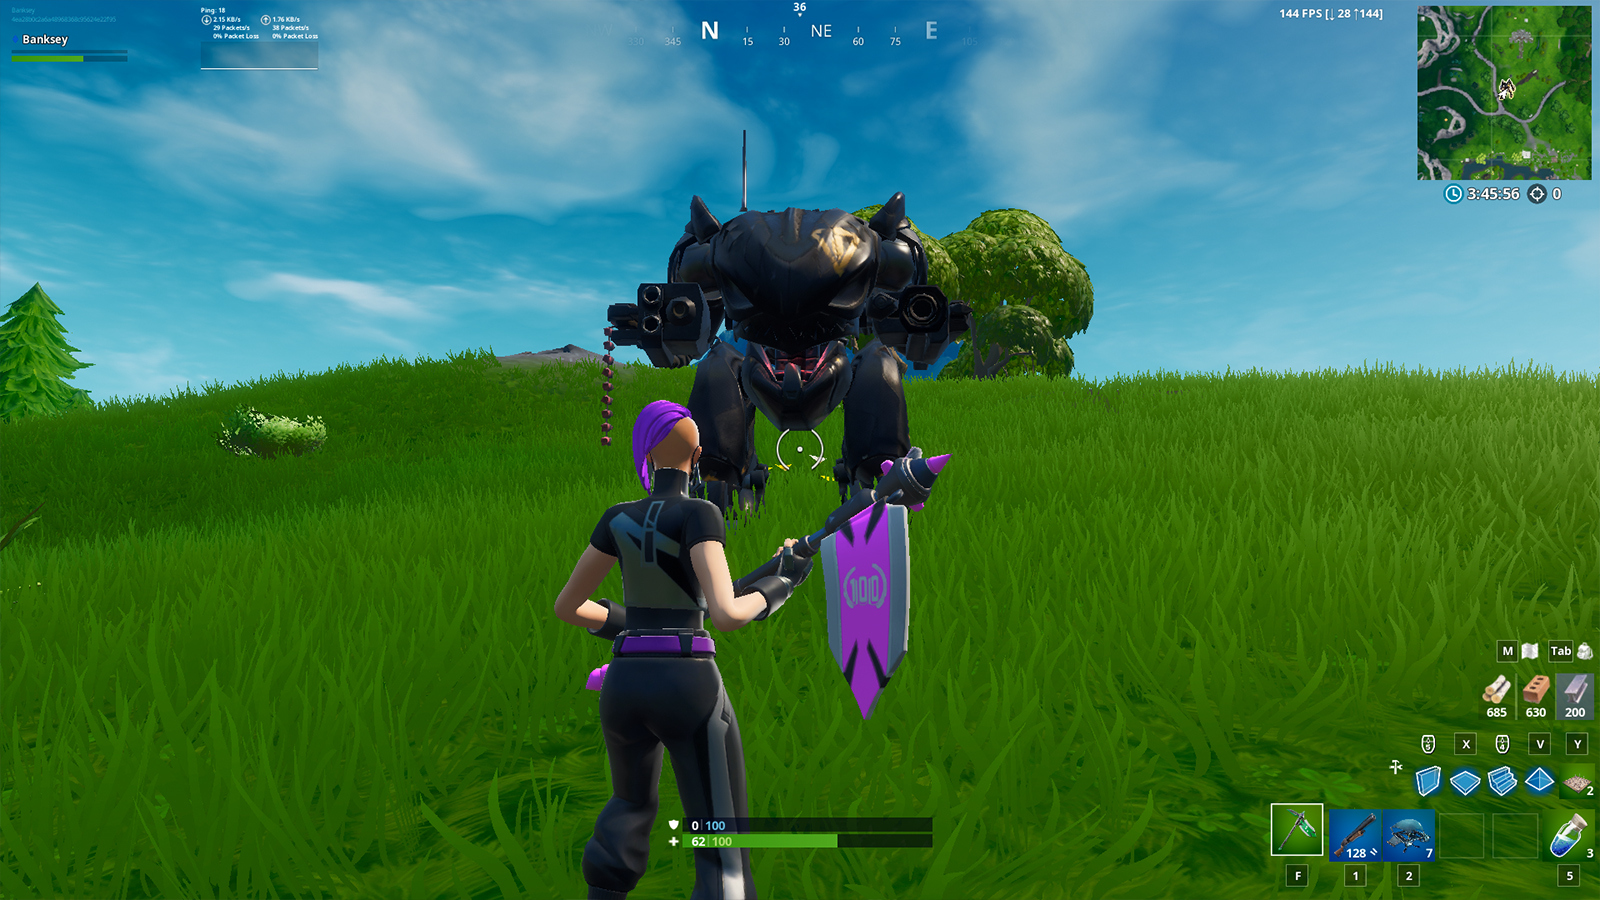 Fortnite Season 10 Mech Location How To Find And Use Brute Mech Suits In Fortnite Season X Dexerto